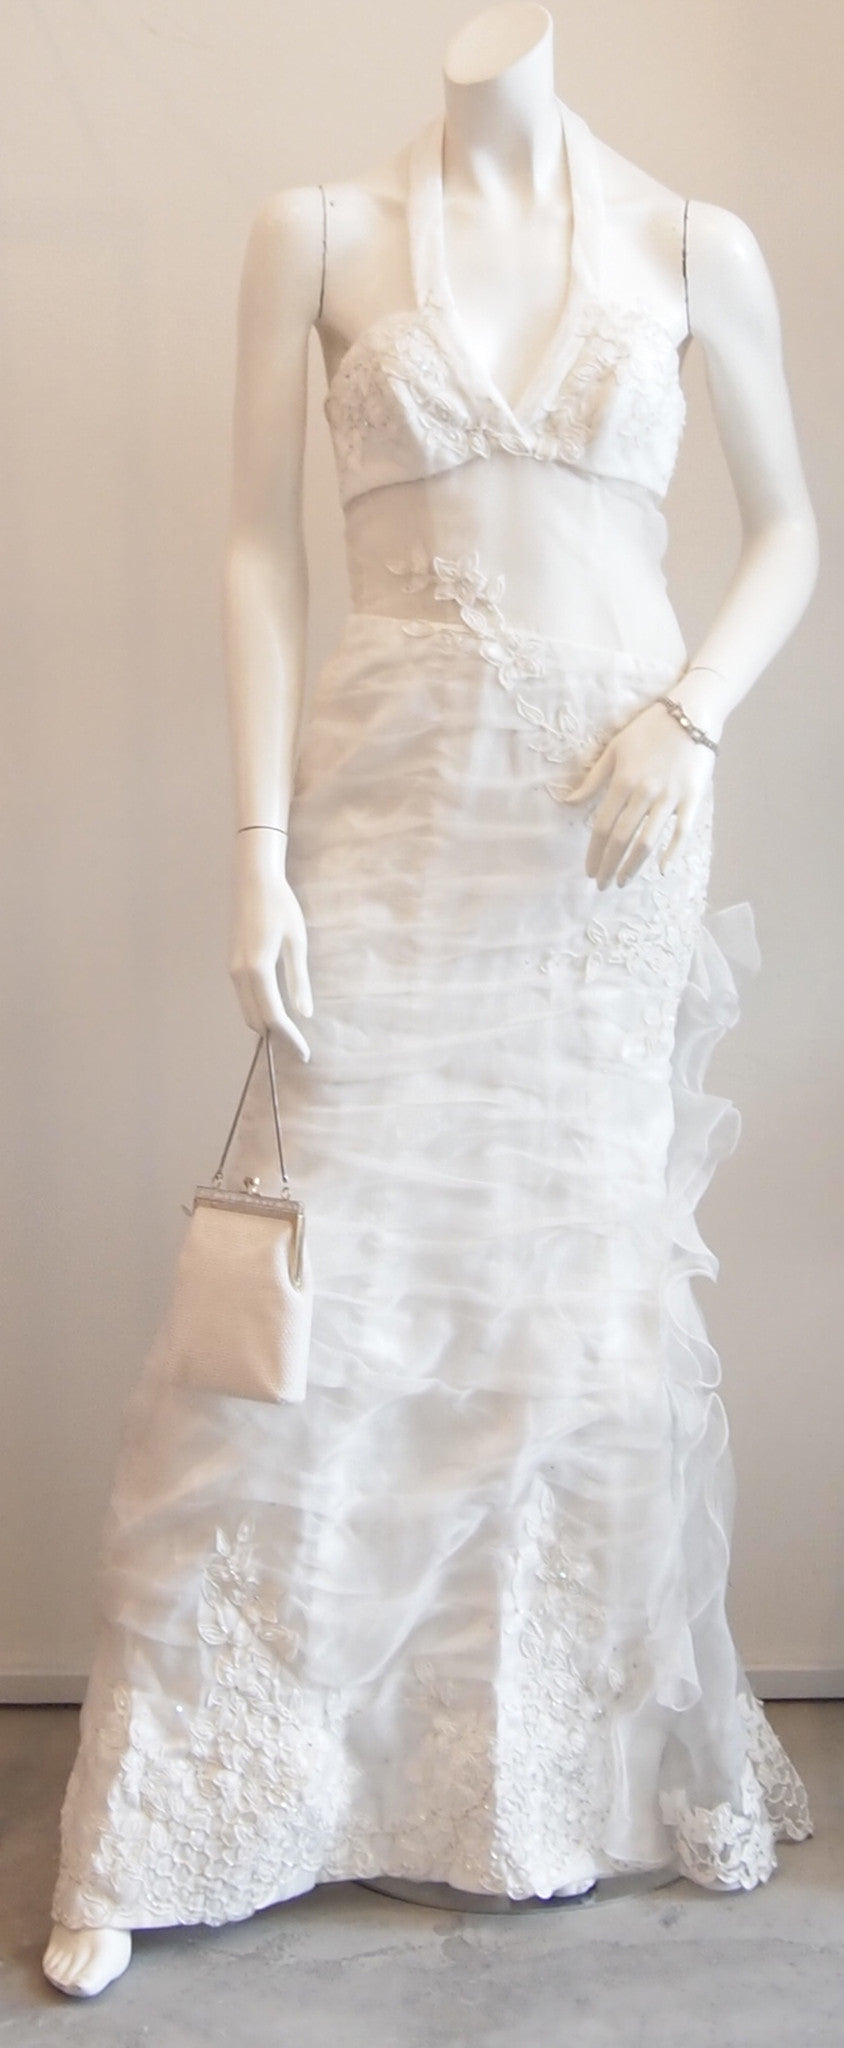 YOUR ONE-OF-A-KIND VINTAGE WEDDING DRESS